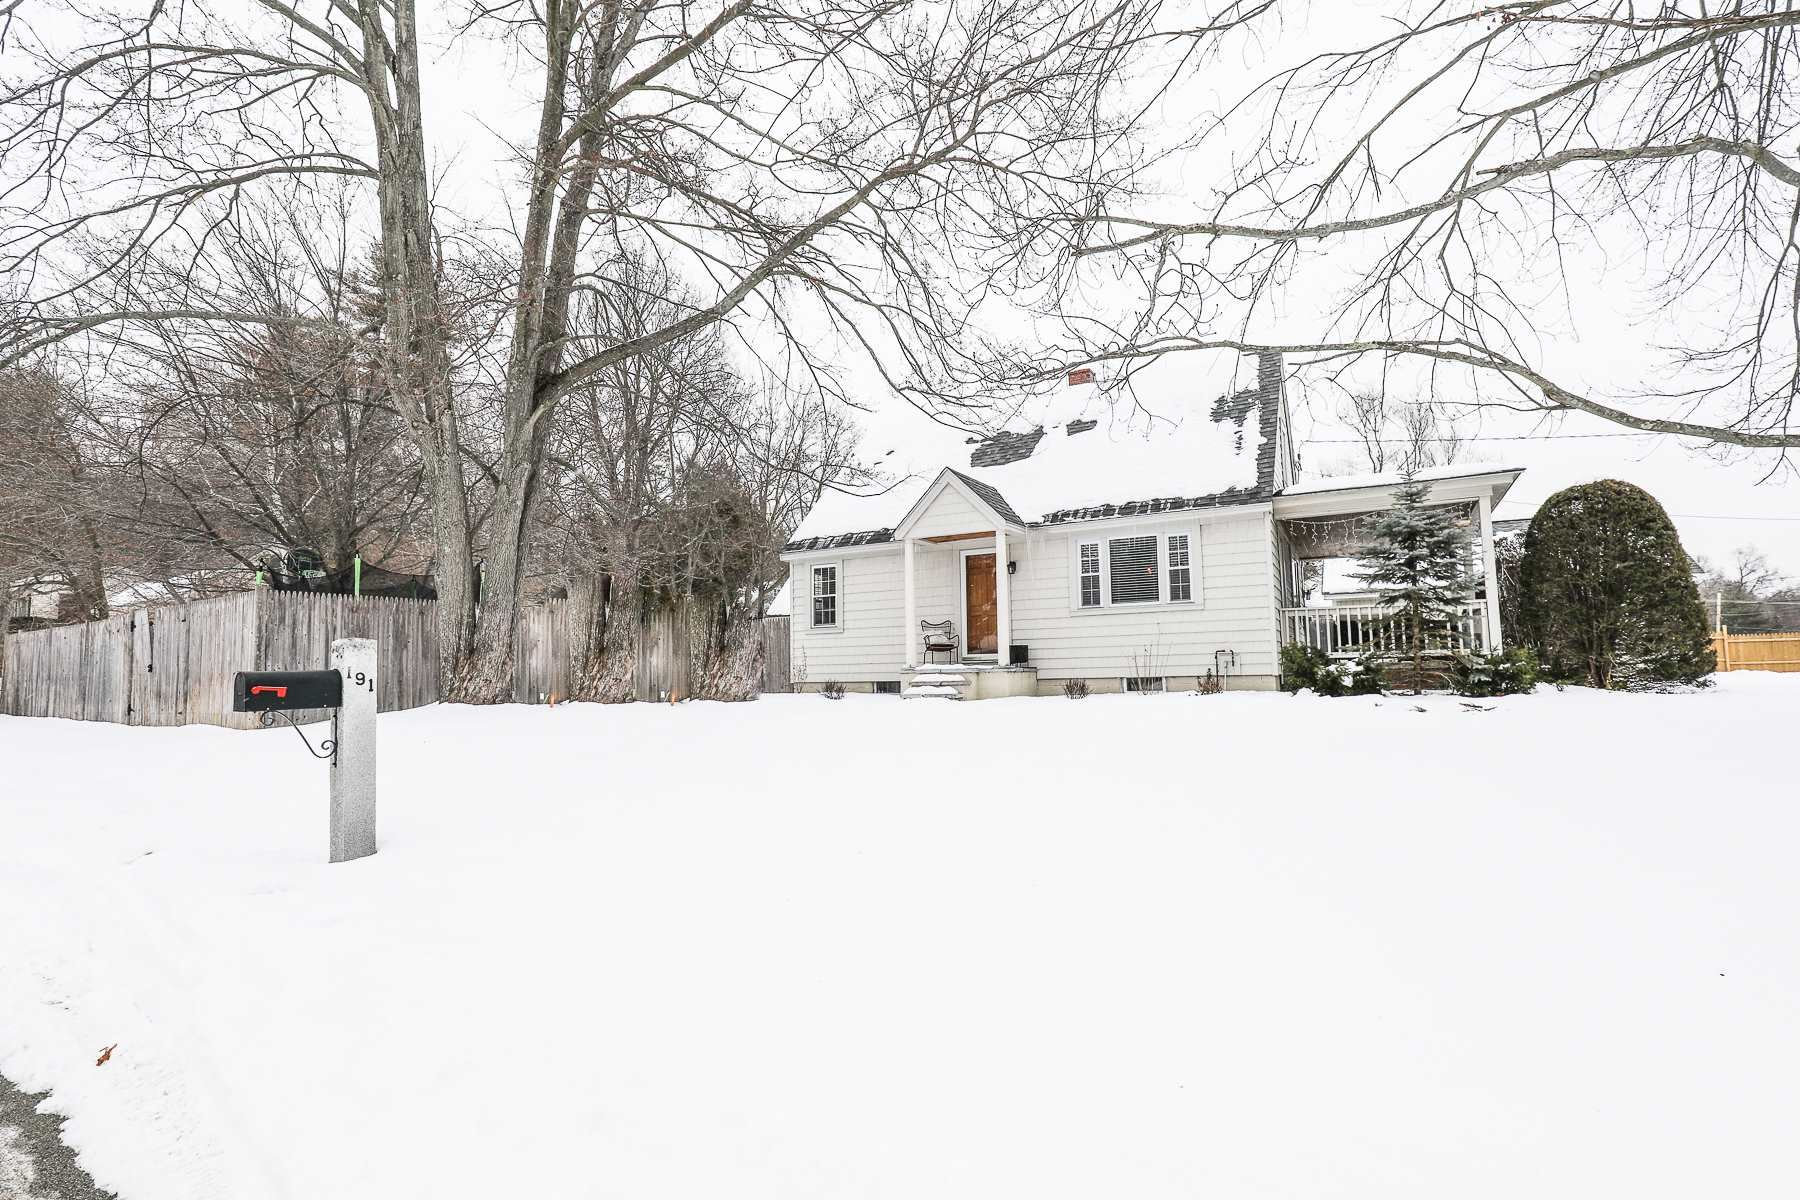 191 Gingras Avenue, Manchester, NH 03104 - MLS#: 4848243